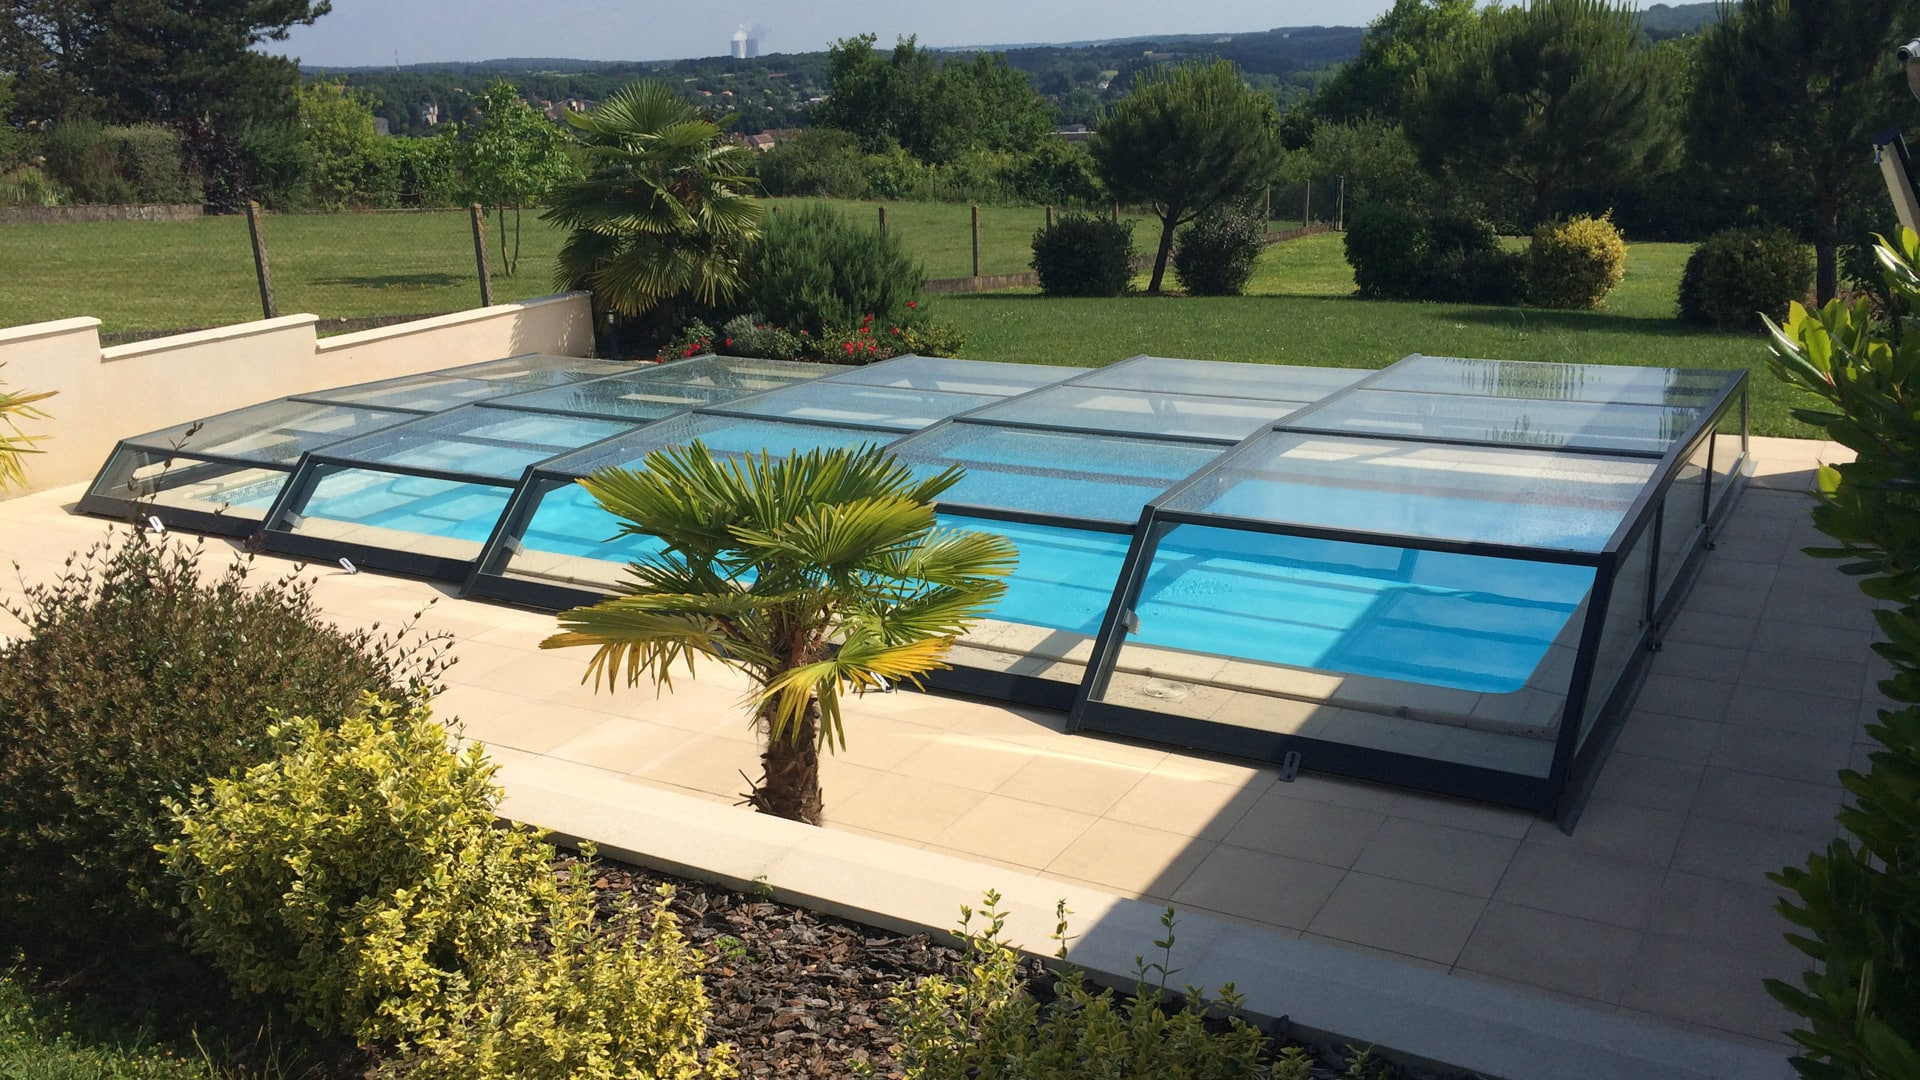 Abris de piscine bas t lescopique iris abri piscine for Abri piscine